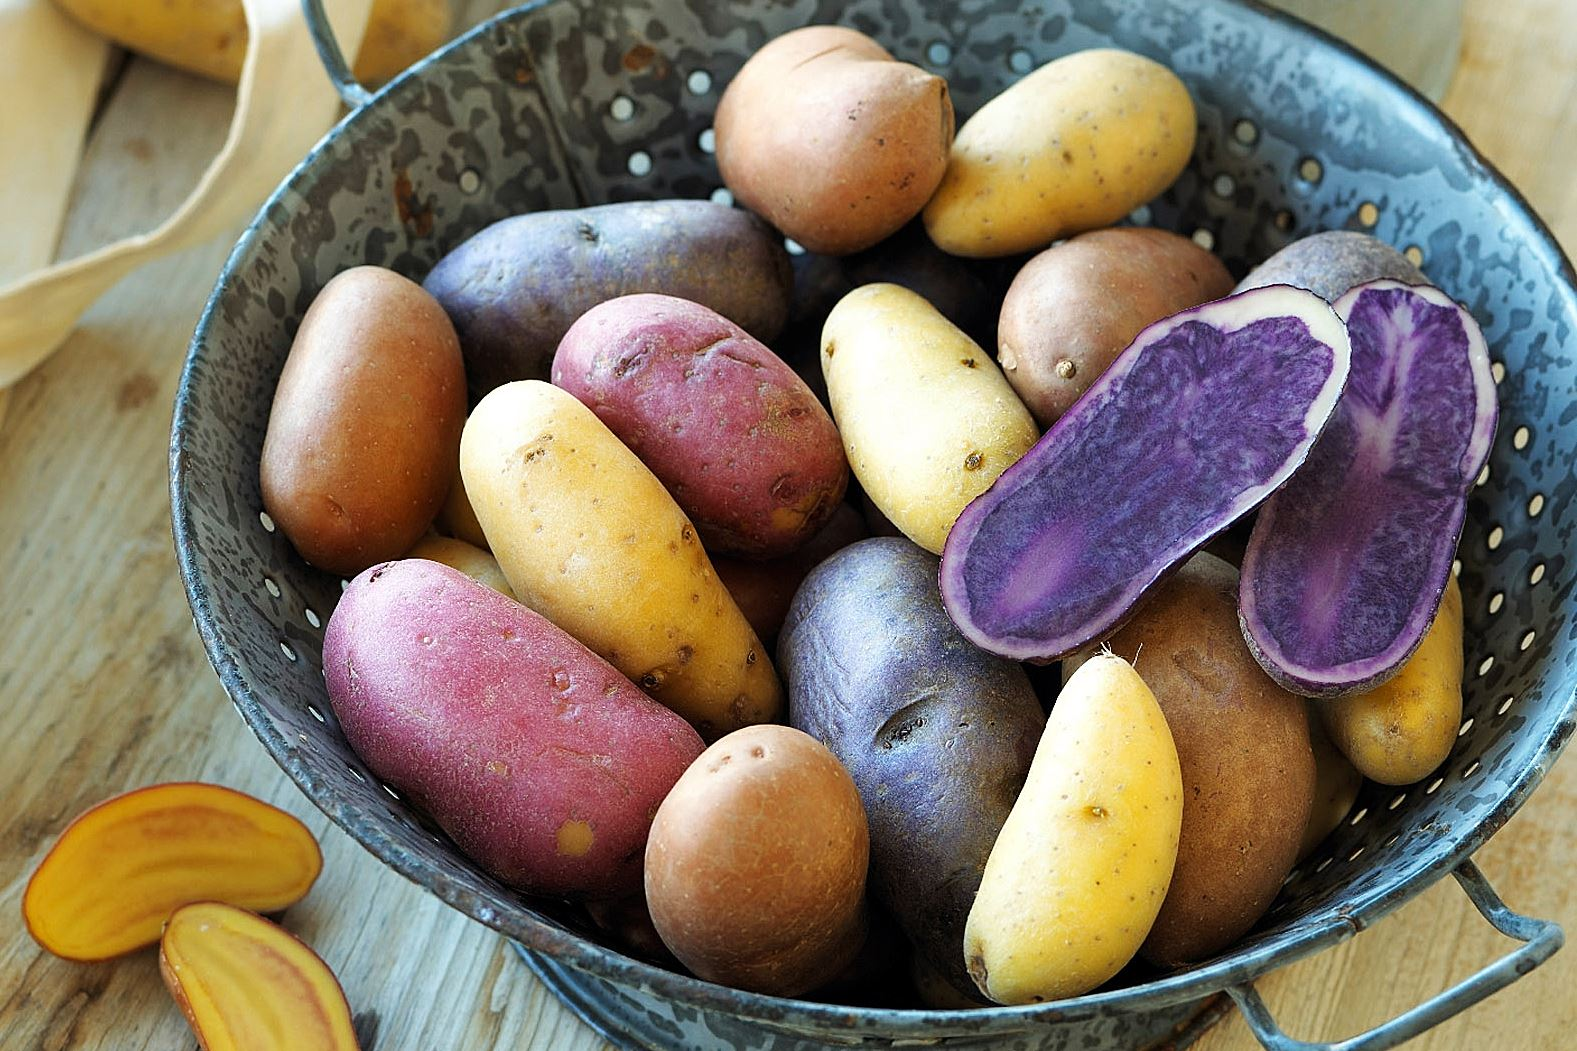 fingerling potatoes Typically 2 to 4 inches long, fingerling potatoes have a red, orange, purple, yellow or white skin.